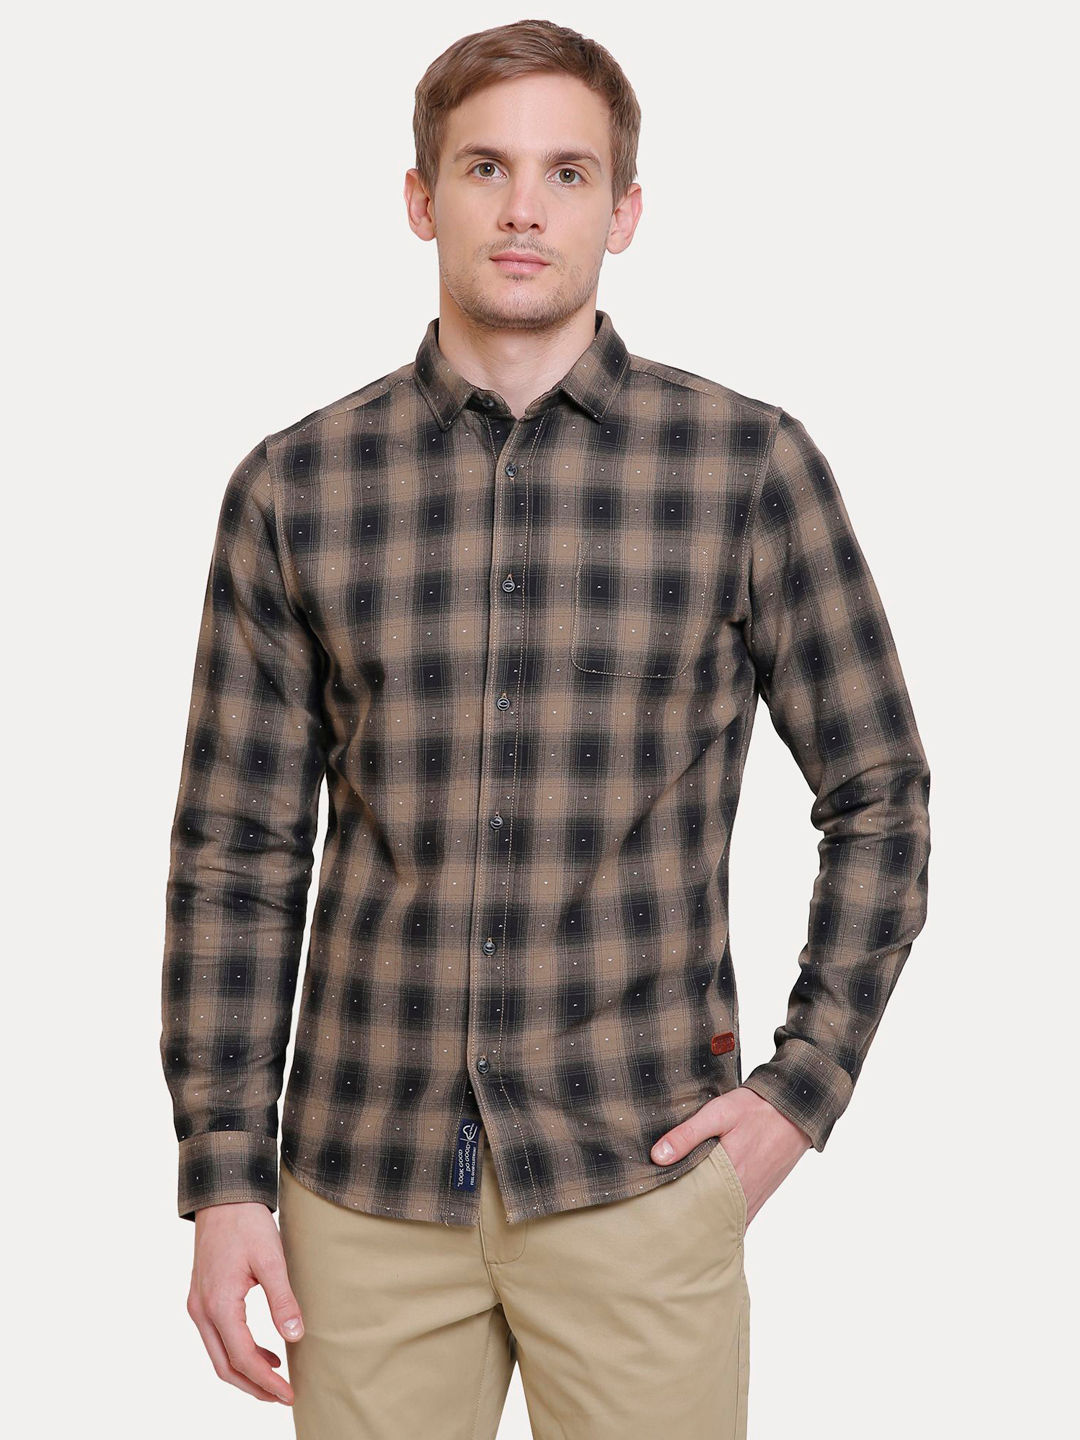 BEIGE AND BLACK PRINTED CASUAL SHIRT